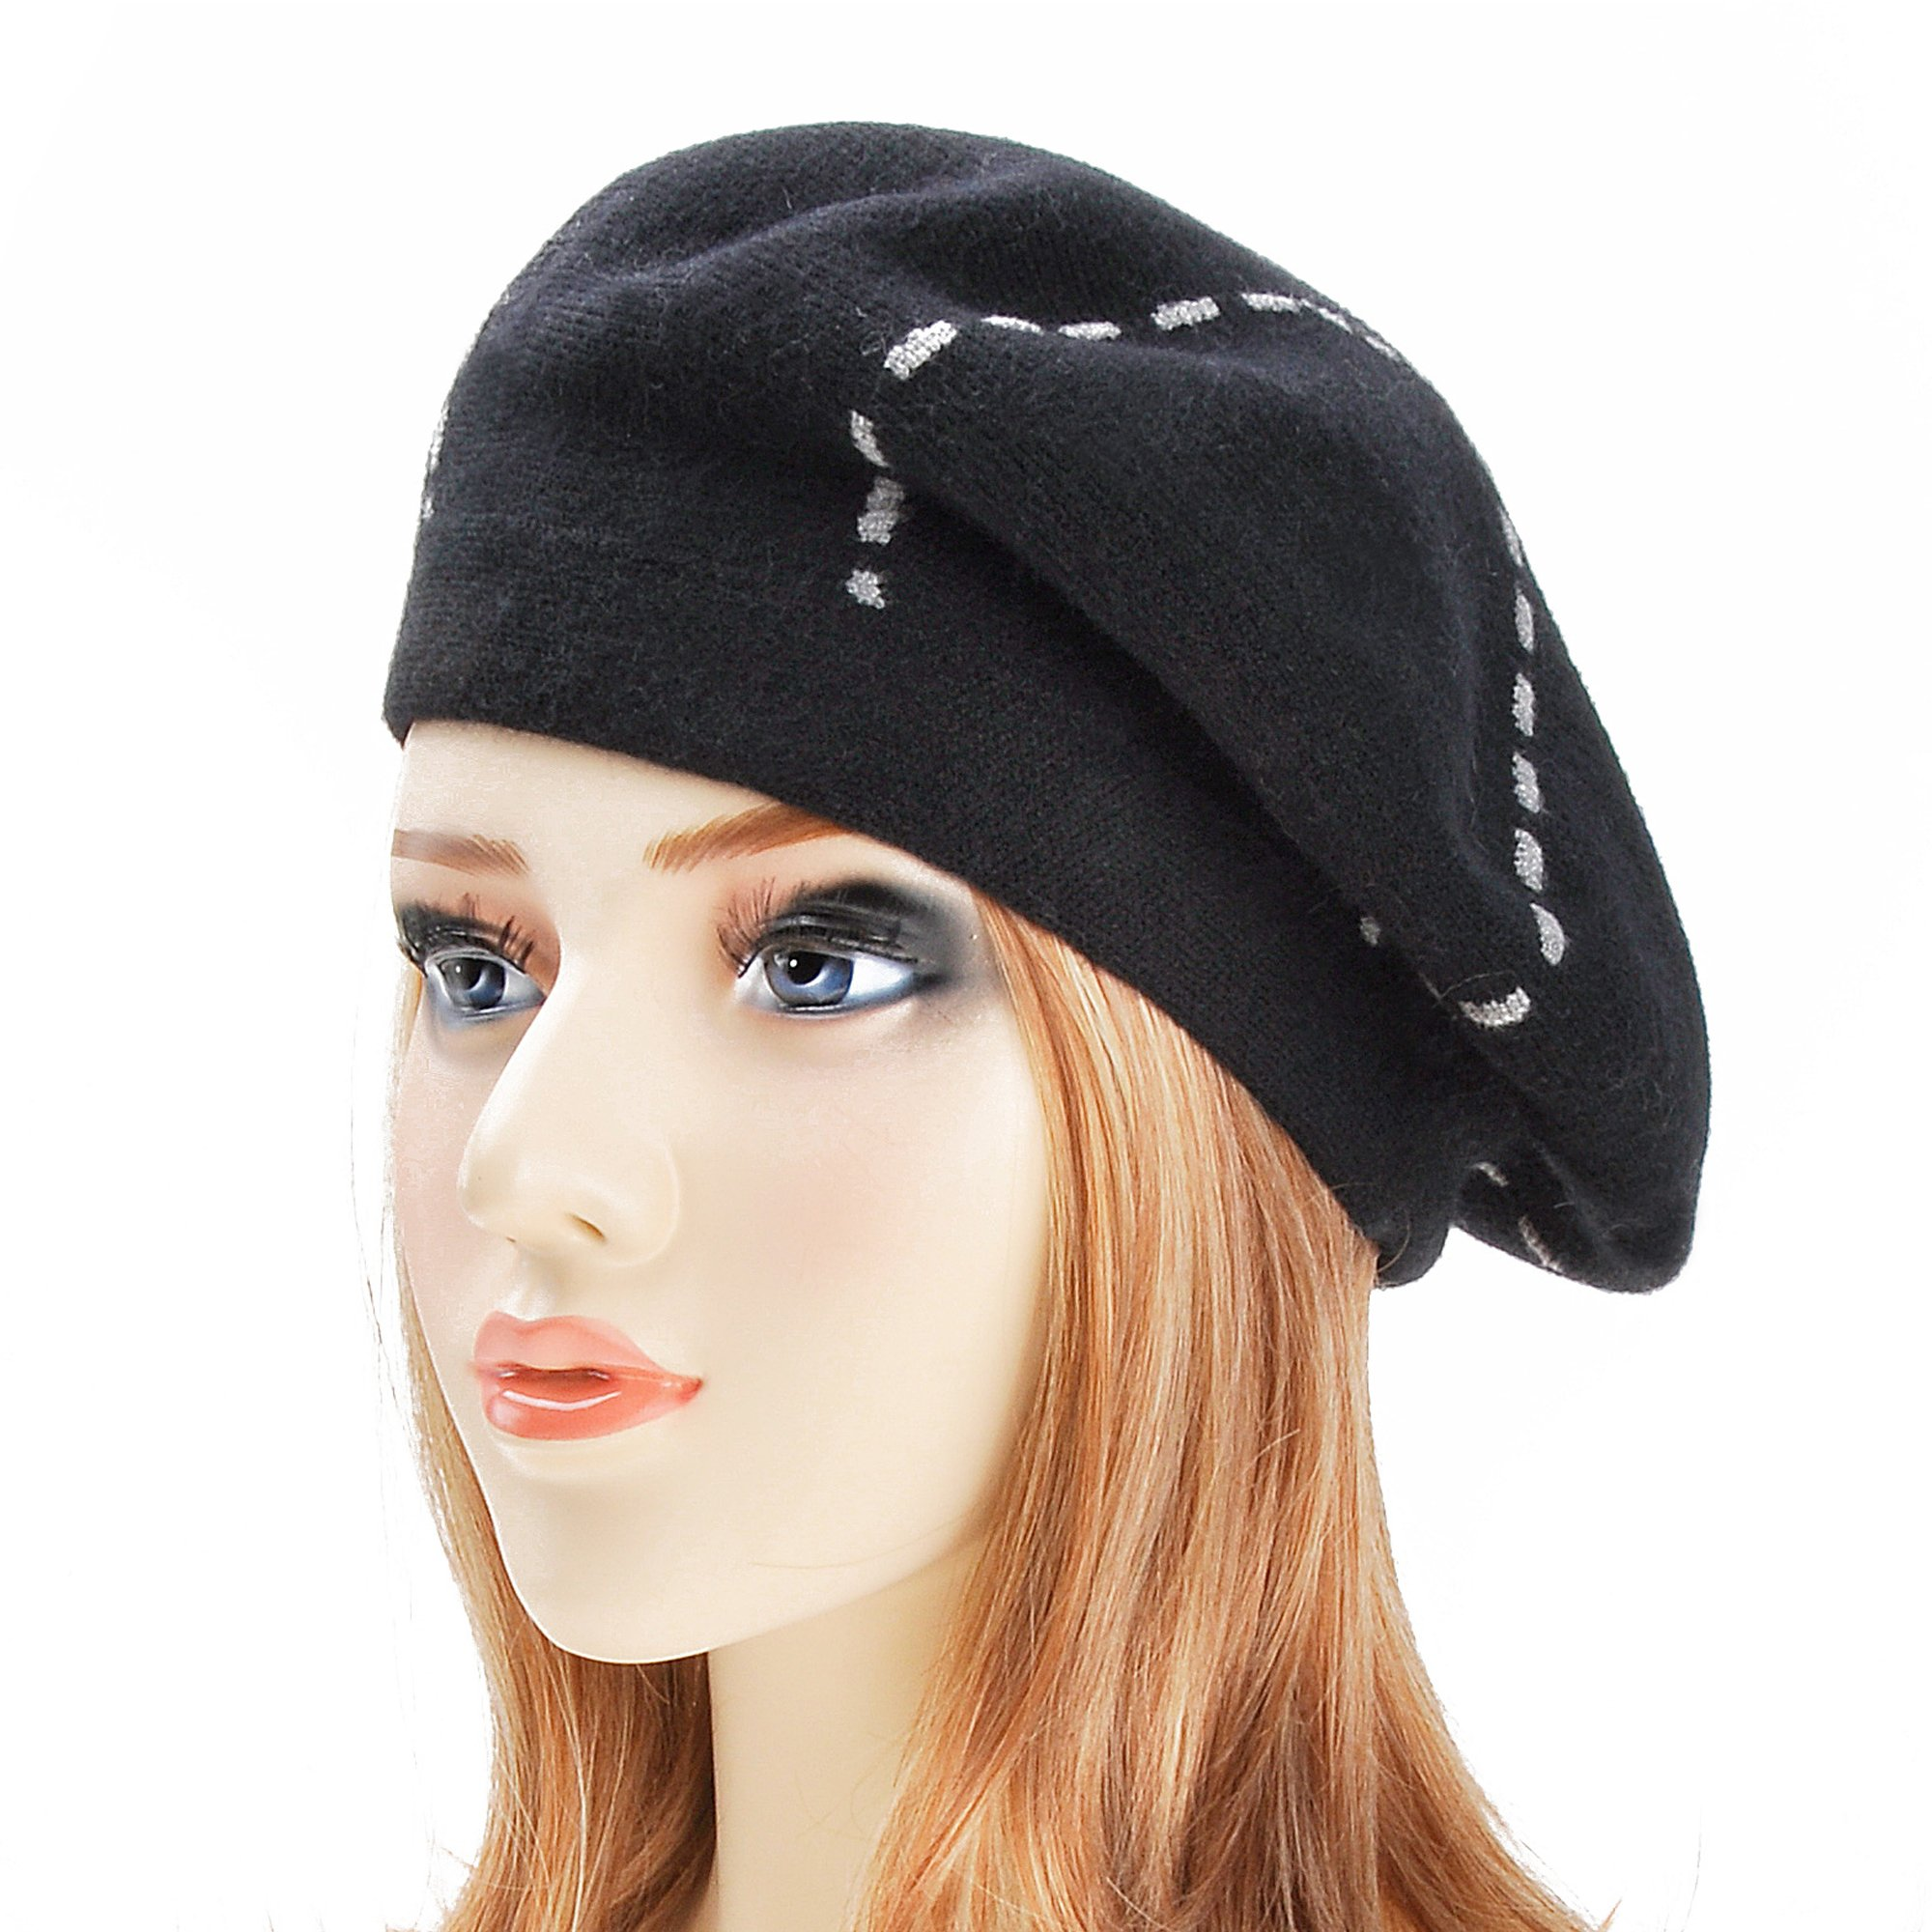 65cf035dfb290 Details about ZLYC Womens Reversible Cashmere Beret Hat Double Layers  French Beret, Black